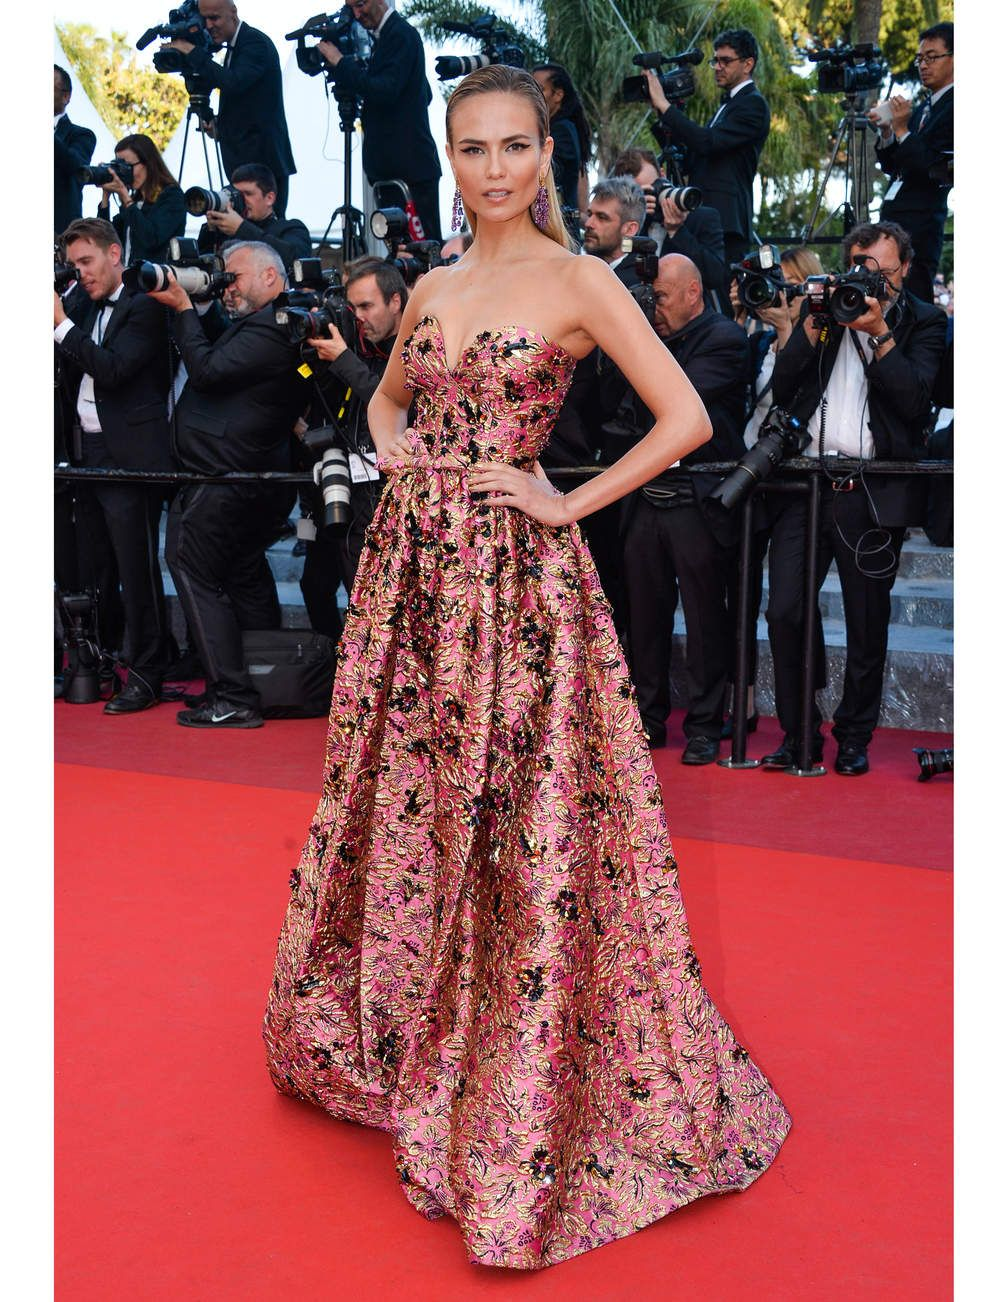 Cannes Les Plus Beaux Looks Du Tapis Rouge In 2018 African Women